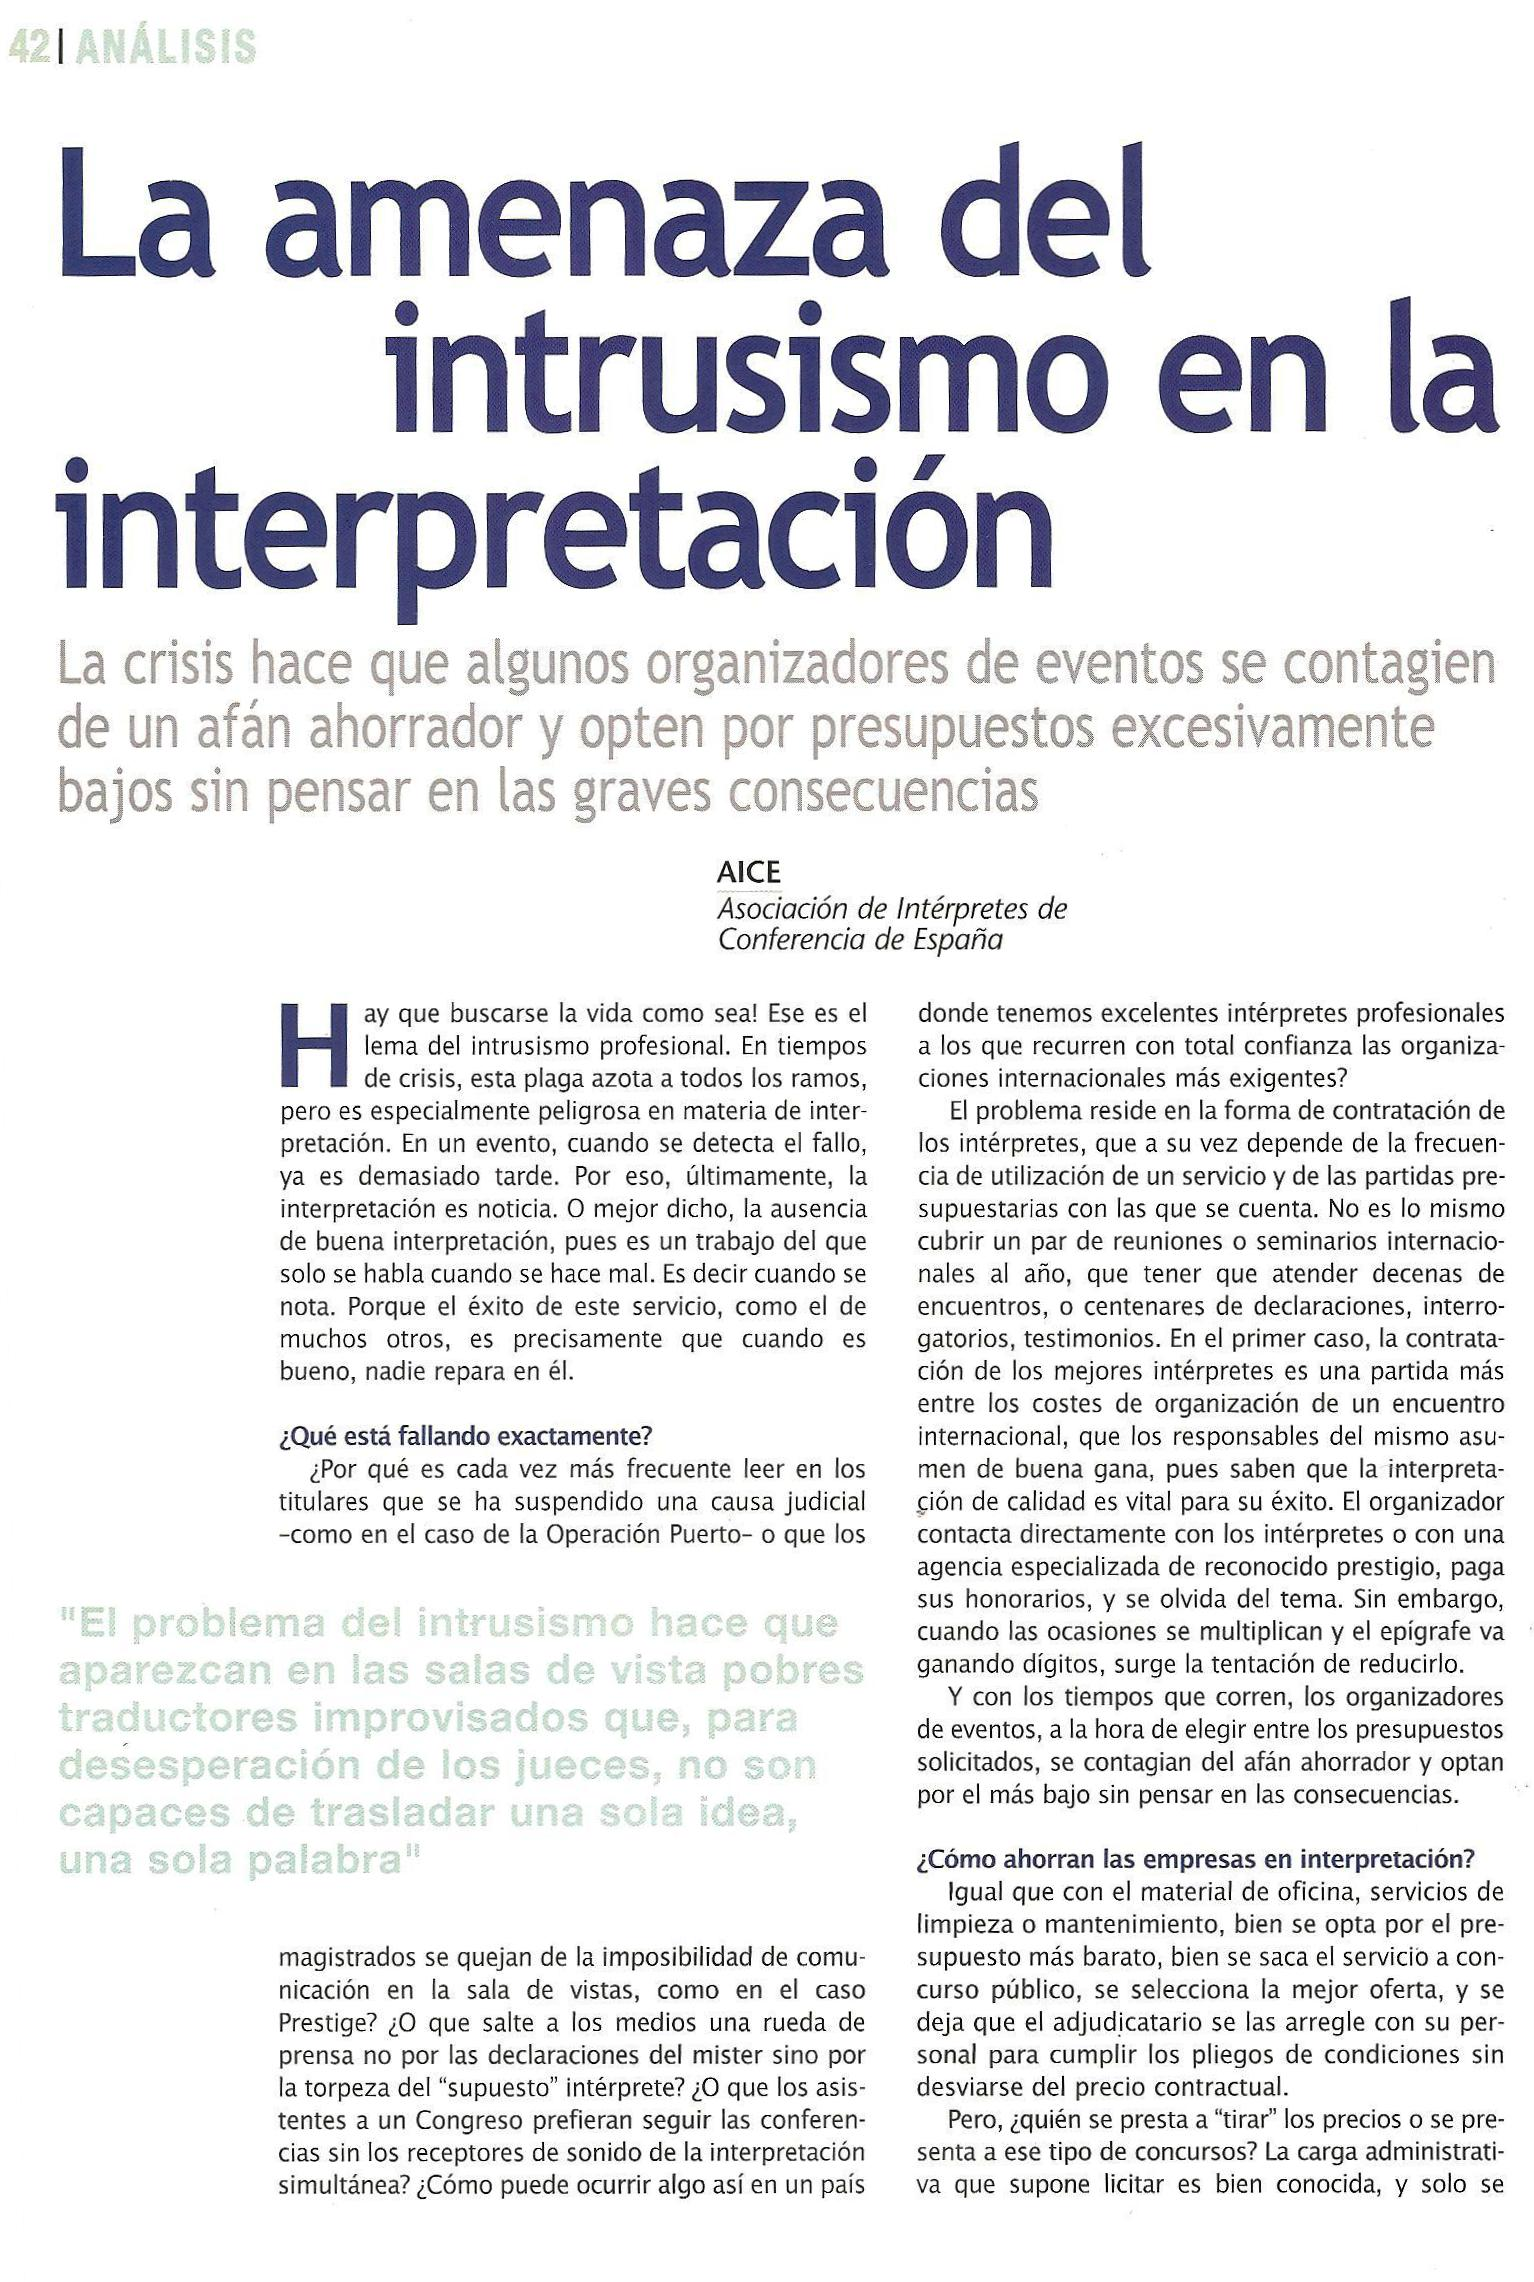 La amenaza del intrusismo en la interpretación